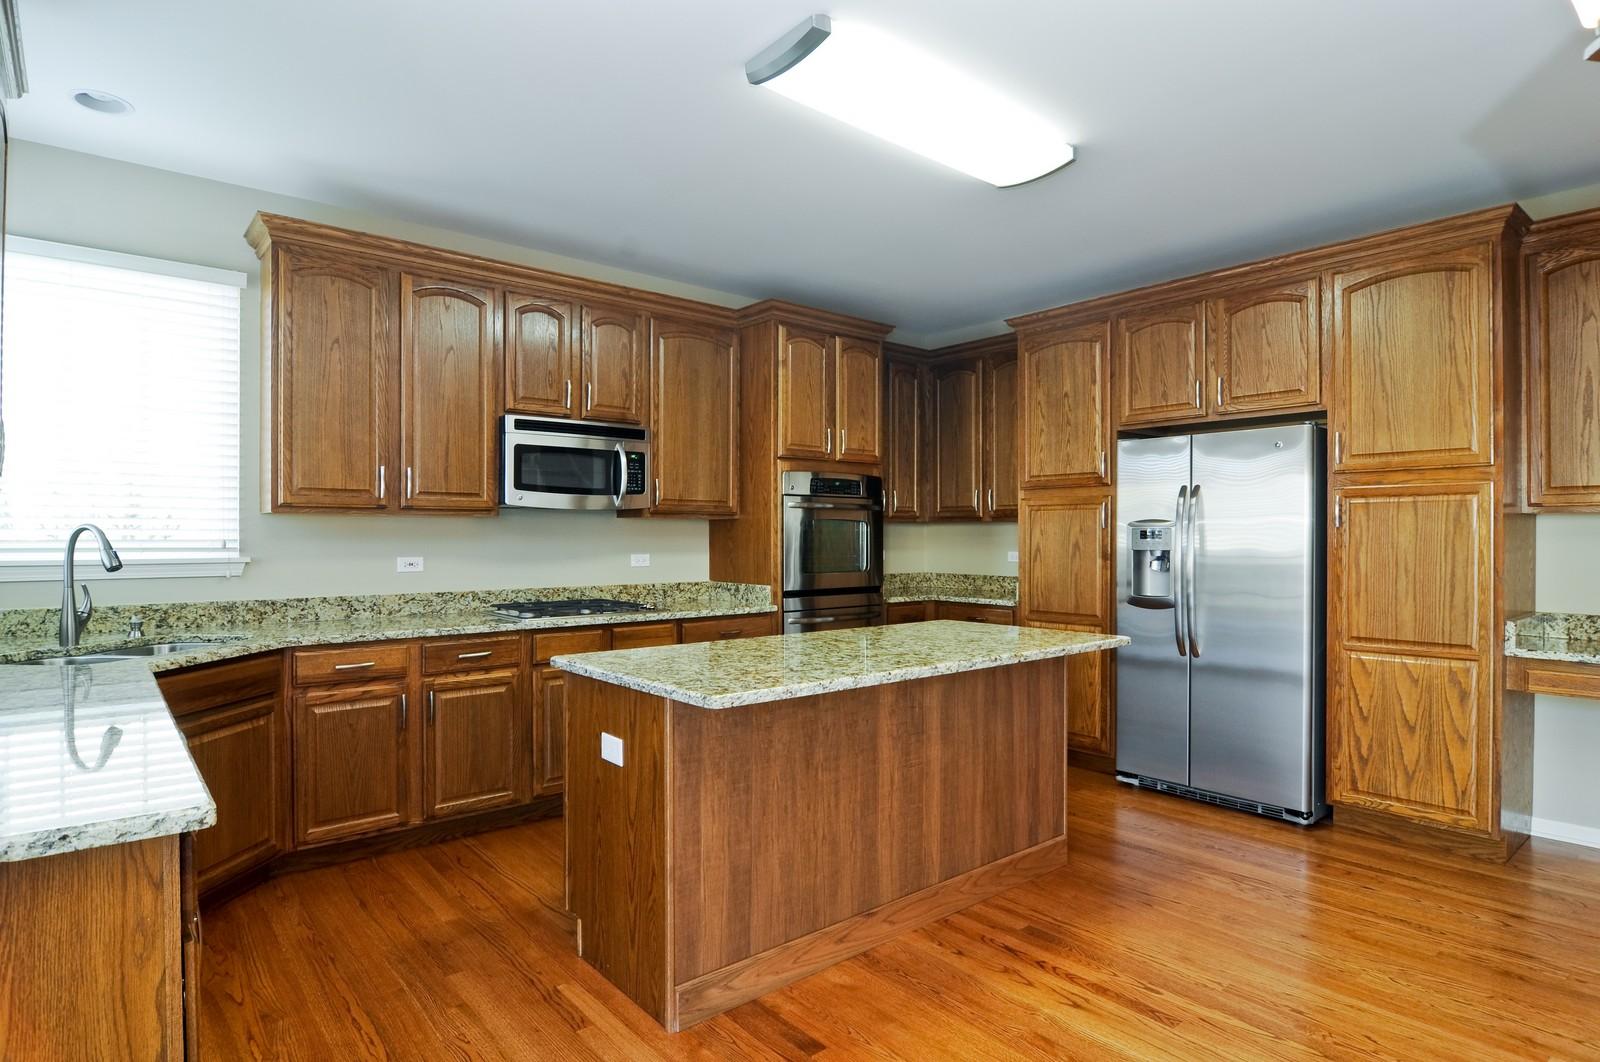 Real Estate Photography - 7394 Brentwood, Gurnee, IL, 60031 - Kitchen